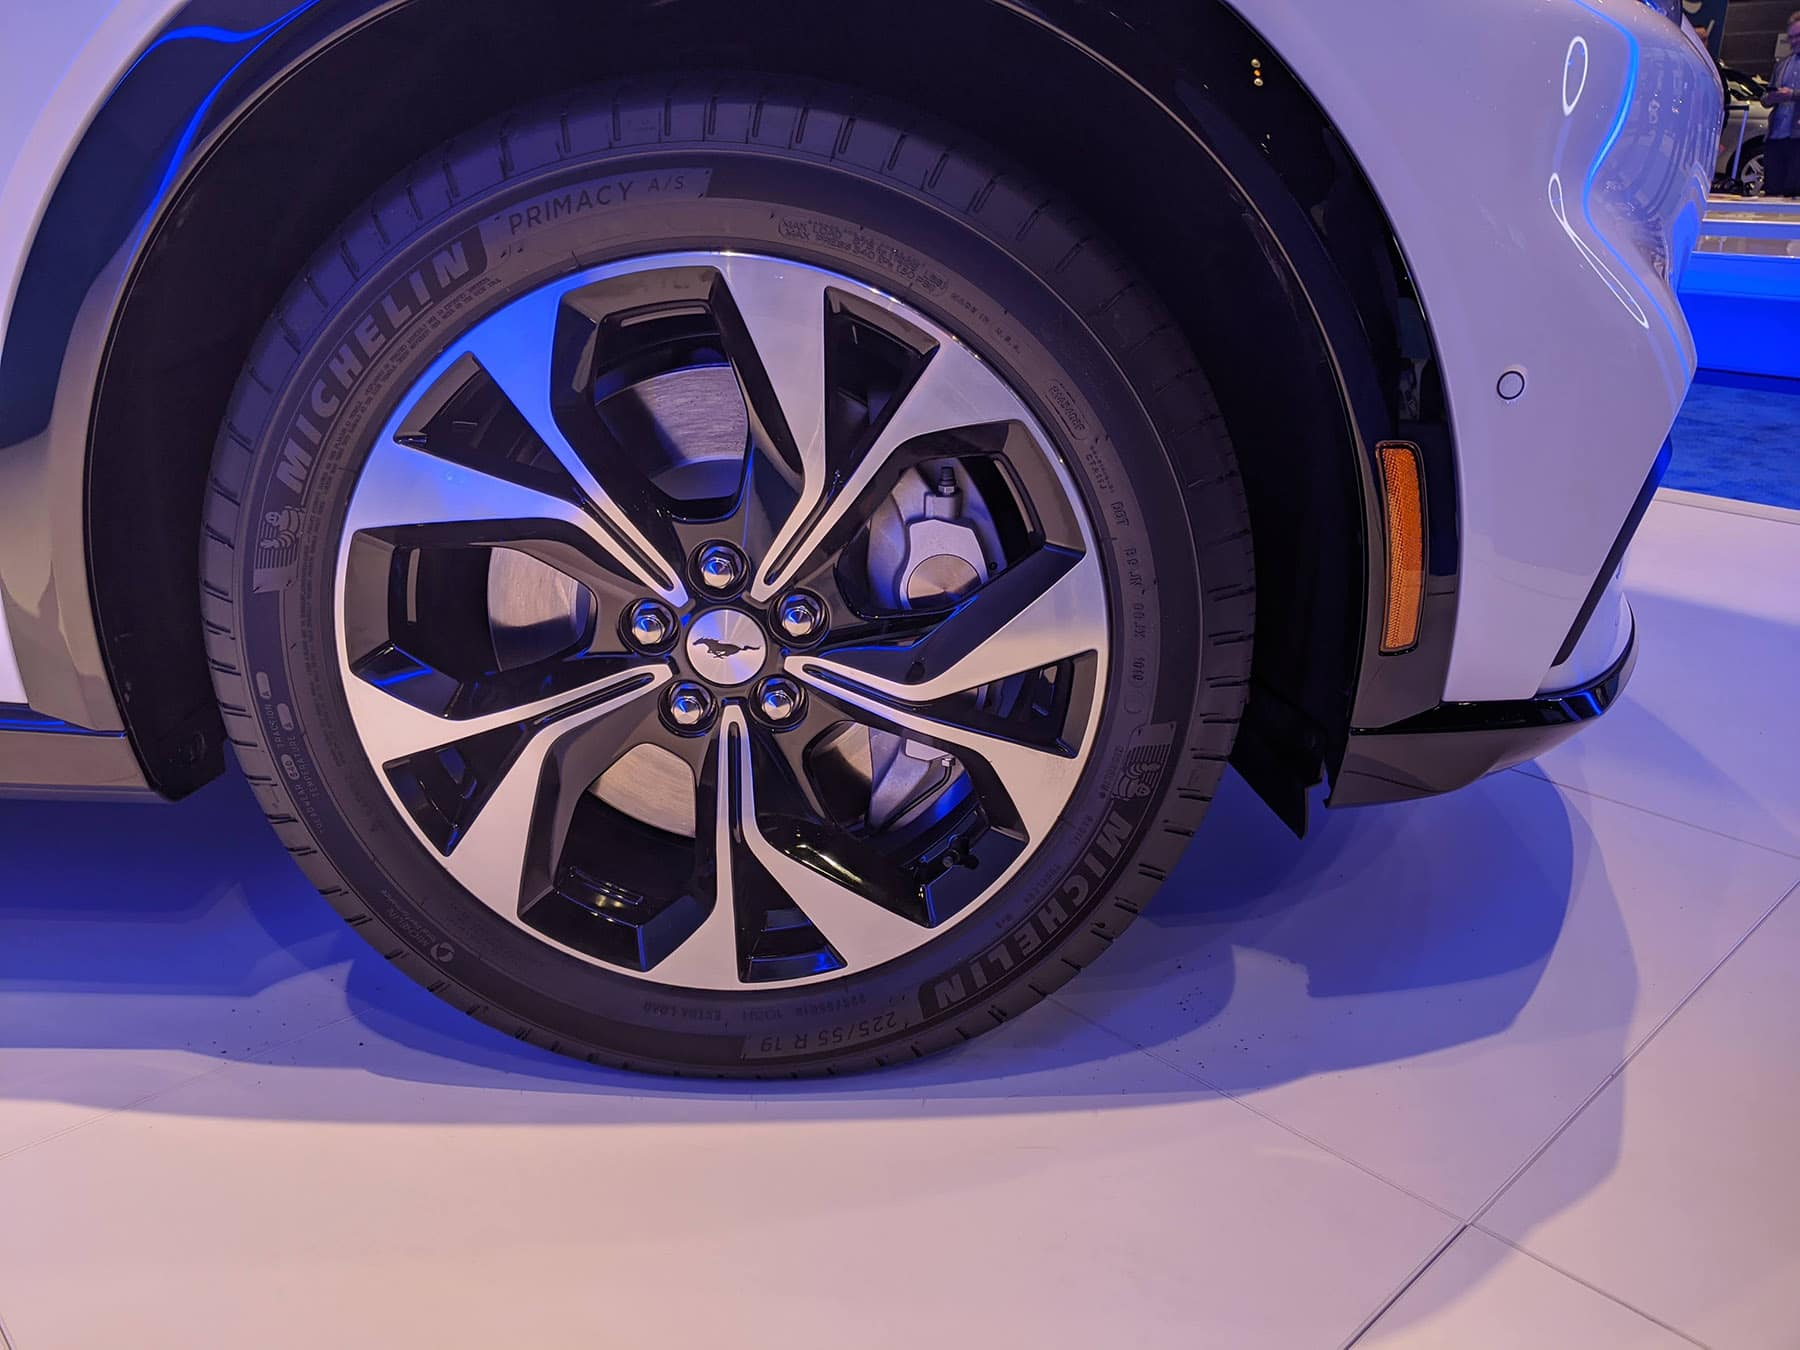 2021 Mustang Mach-E tire at the 2020 Chicago Auto Show